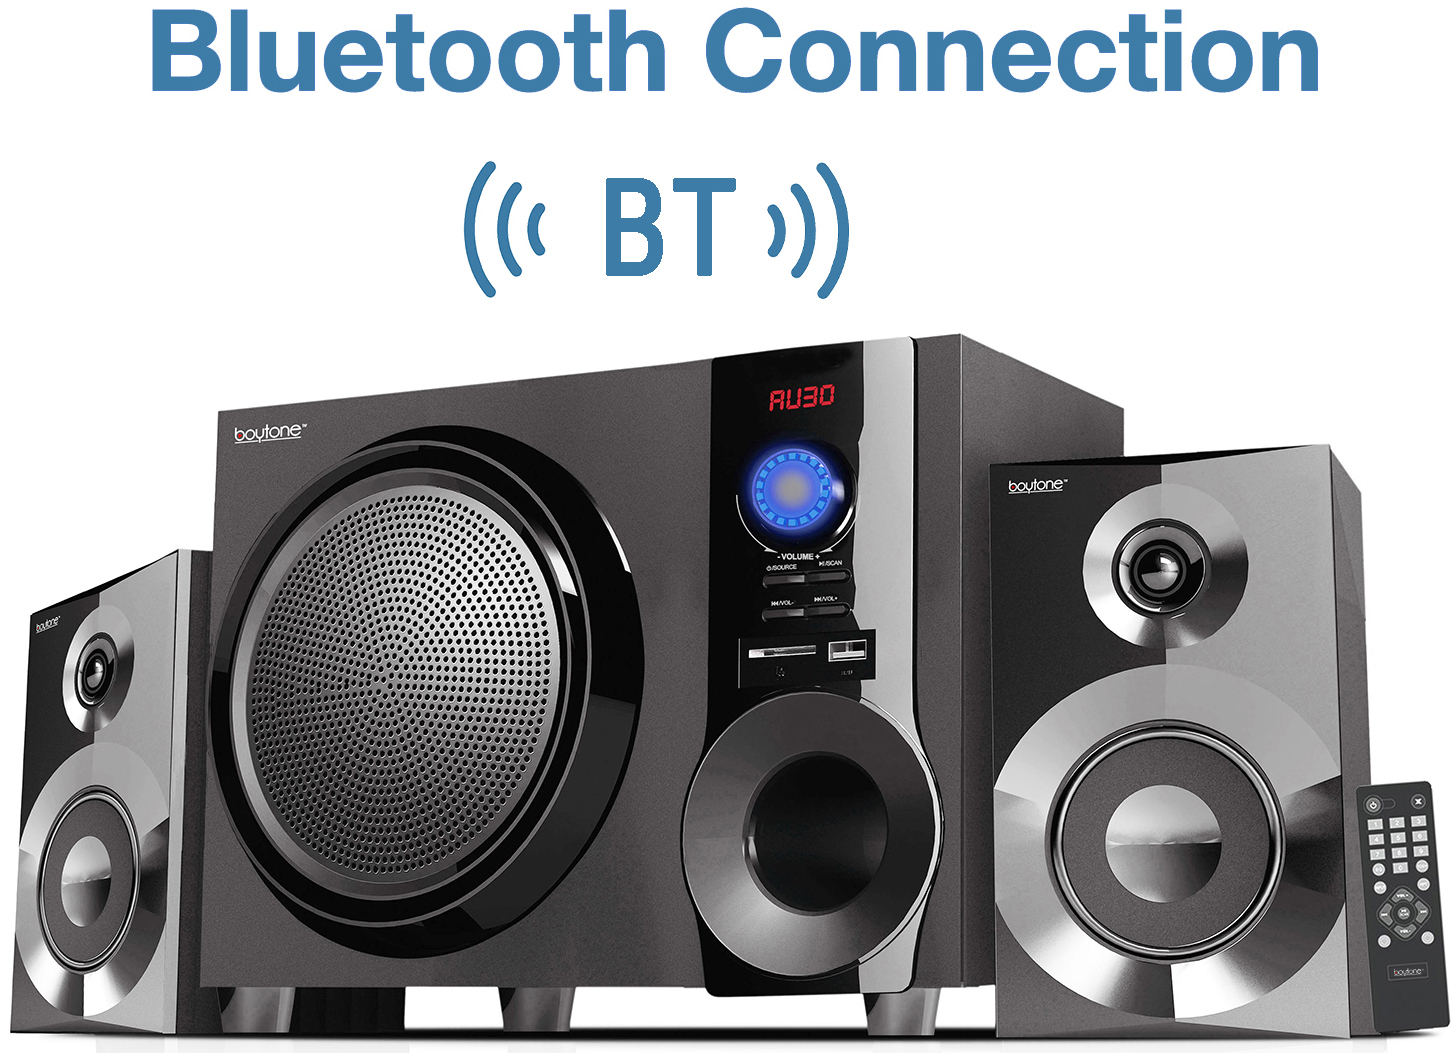 Deeper Bass USB Recording 25W Boytone BT-16G Portable Bluetooth Boombox Speaker LED Light Microphone Indoor//Outdoor EQ 9H Playtime 2 x 3 Tweeter AUX Micro SD 5 Subwoofer FM Loud Sound